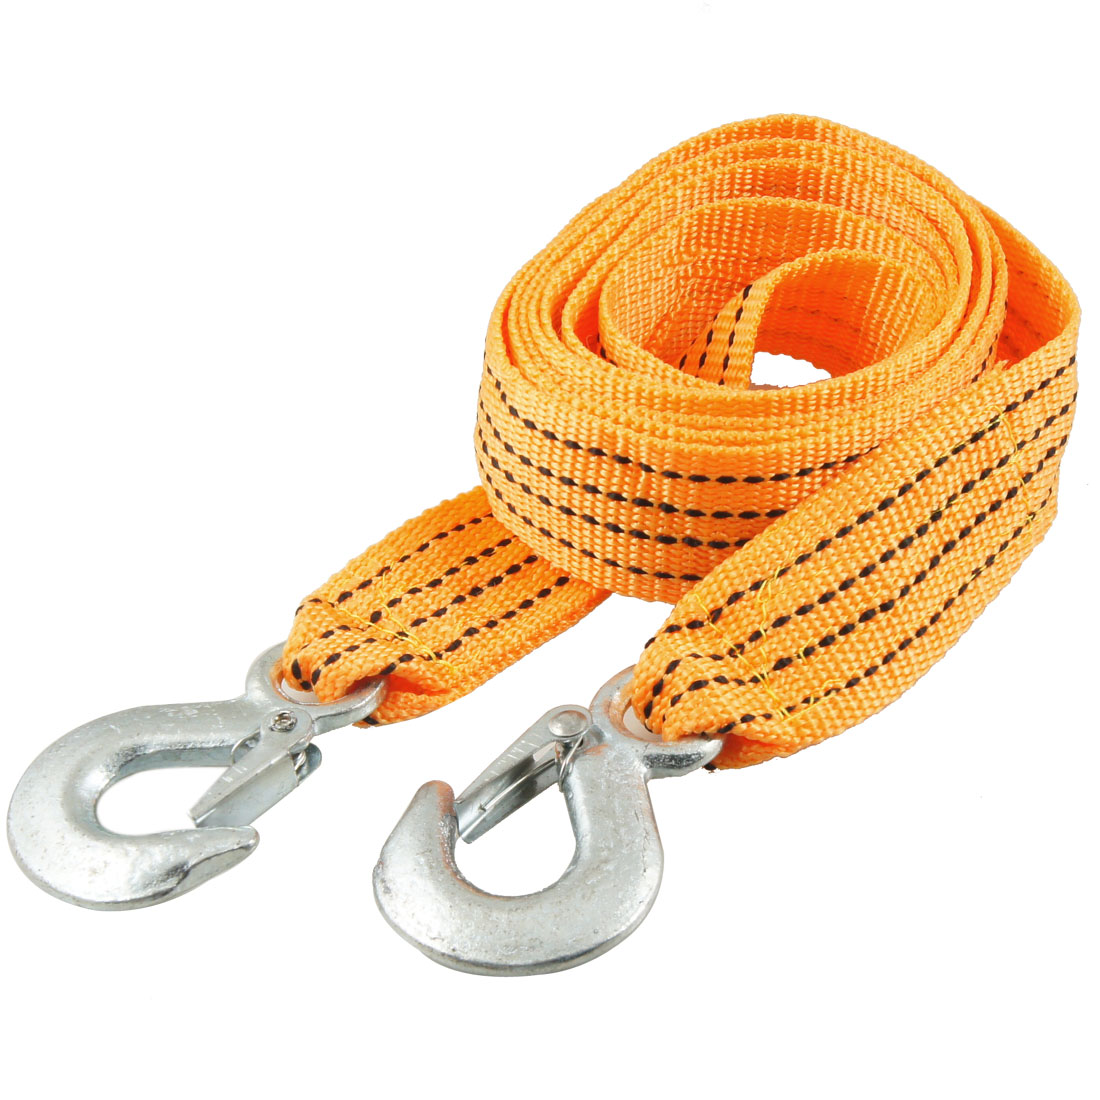 UXCELL Auto Car 3 Ton Capacity Hook Clasp Orange Black Nylon Tow Rope 2.5M